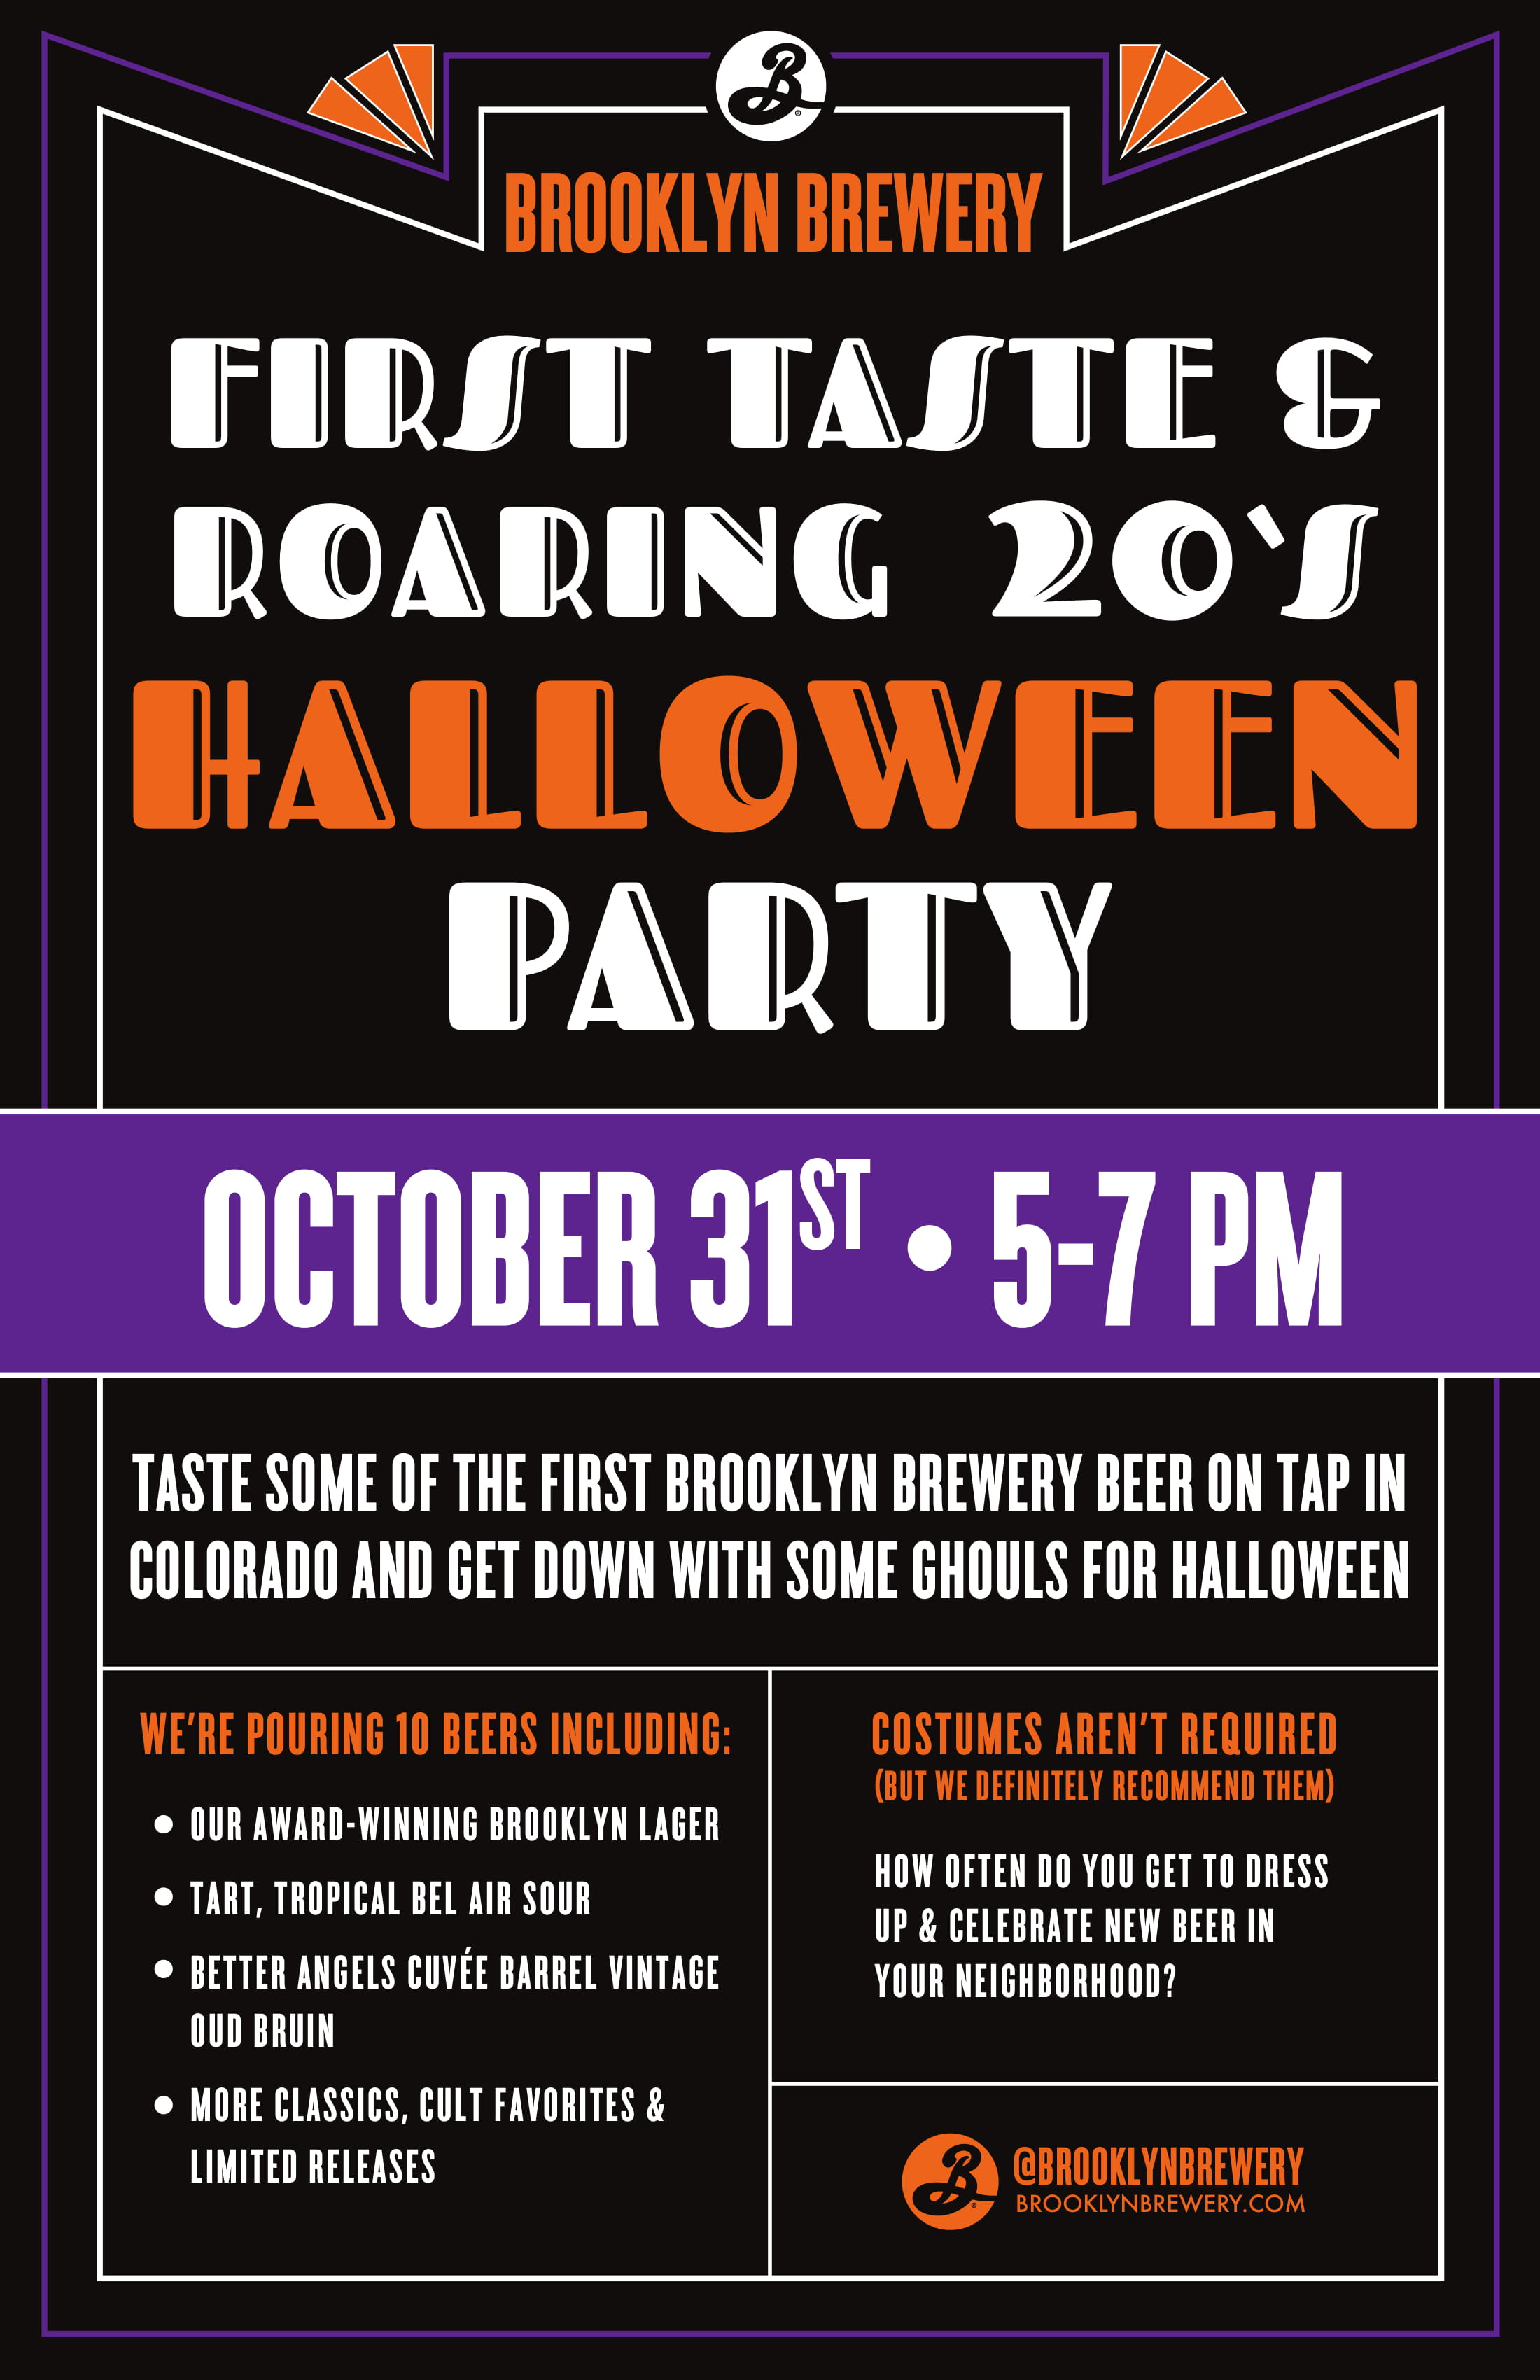 Brooklyn Brewery First Taste & Roaring '20s Halloween Party at Parry's Northglenn